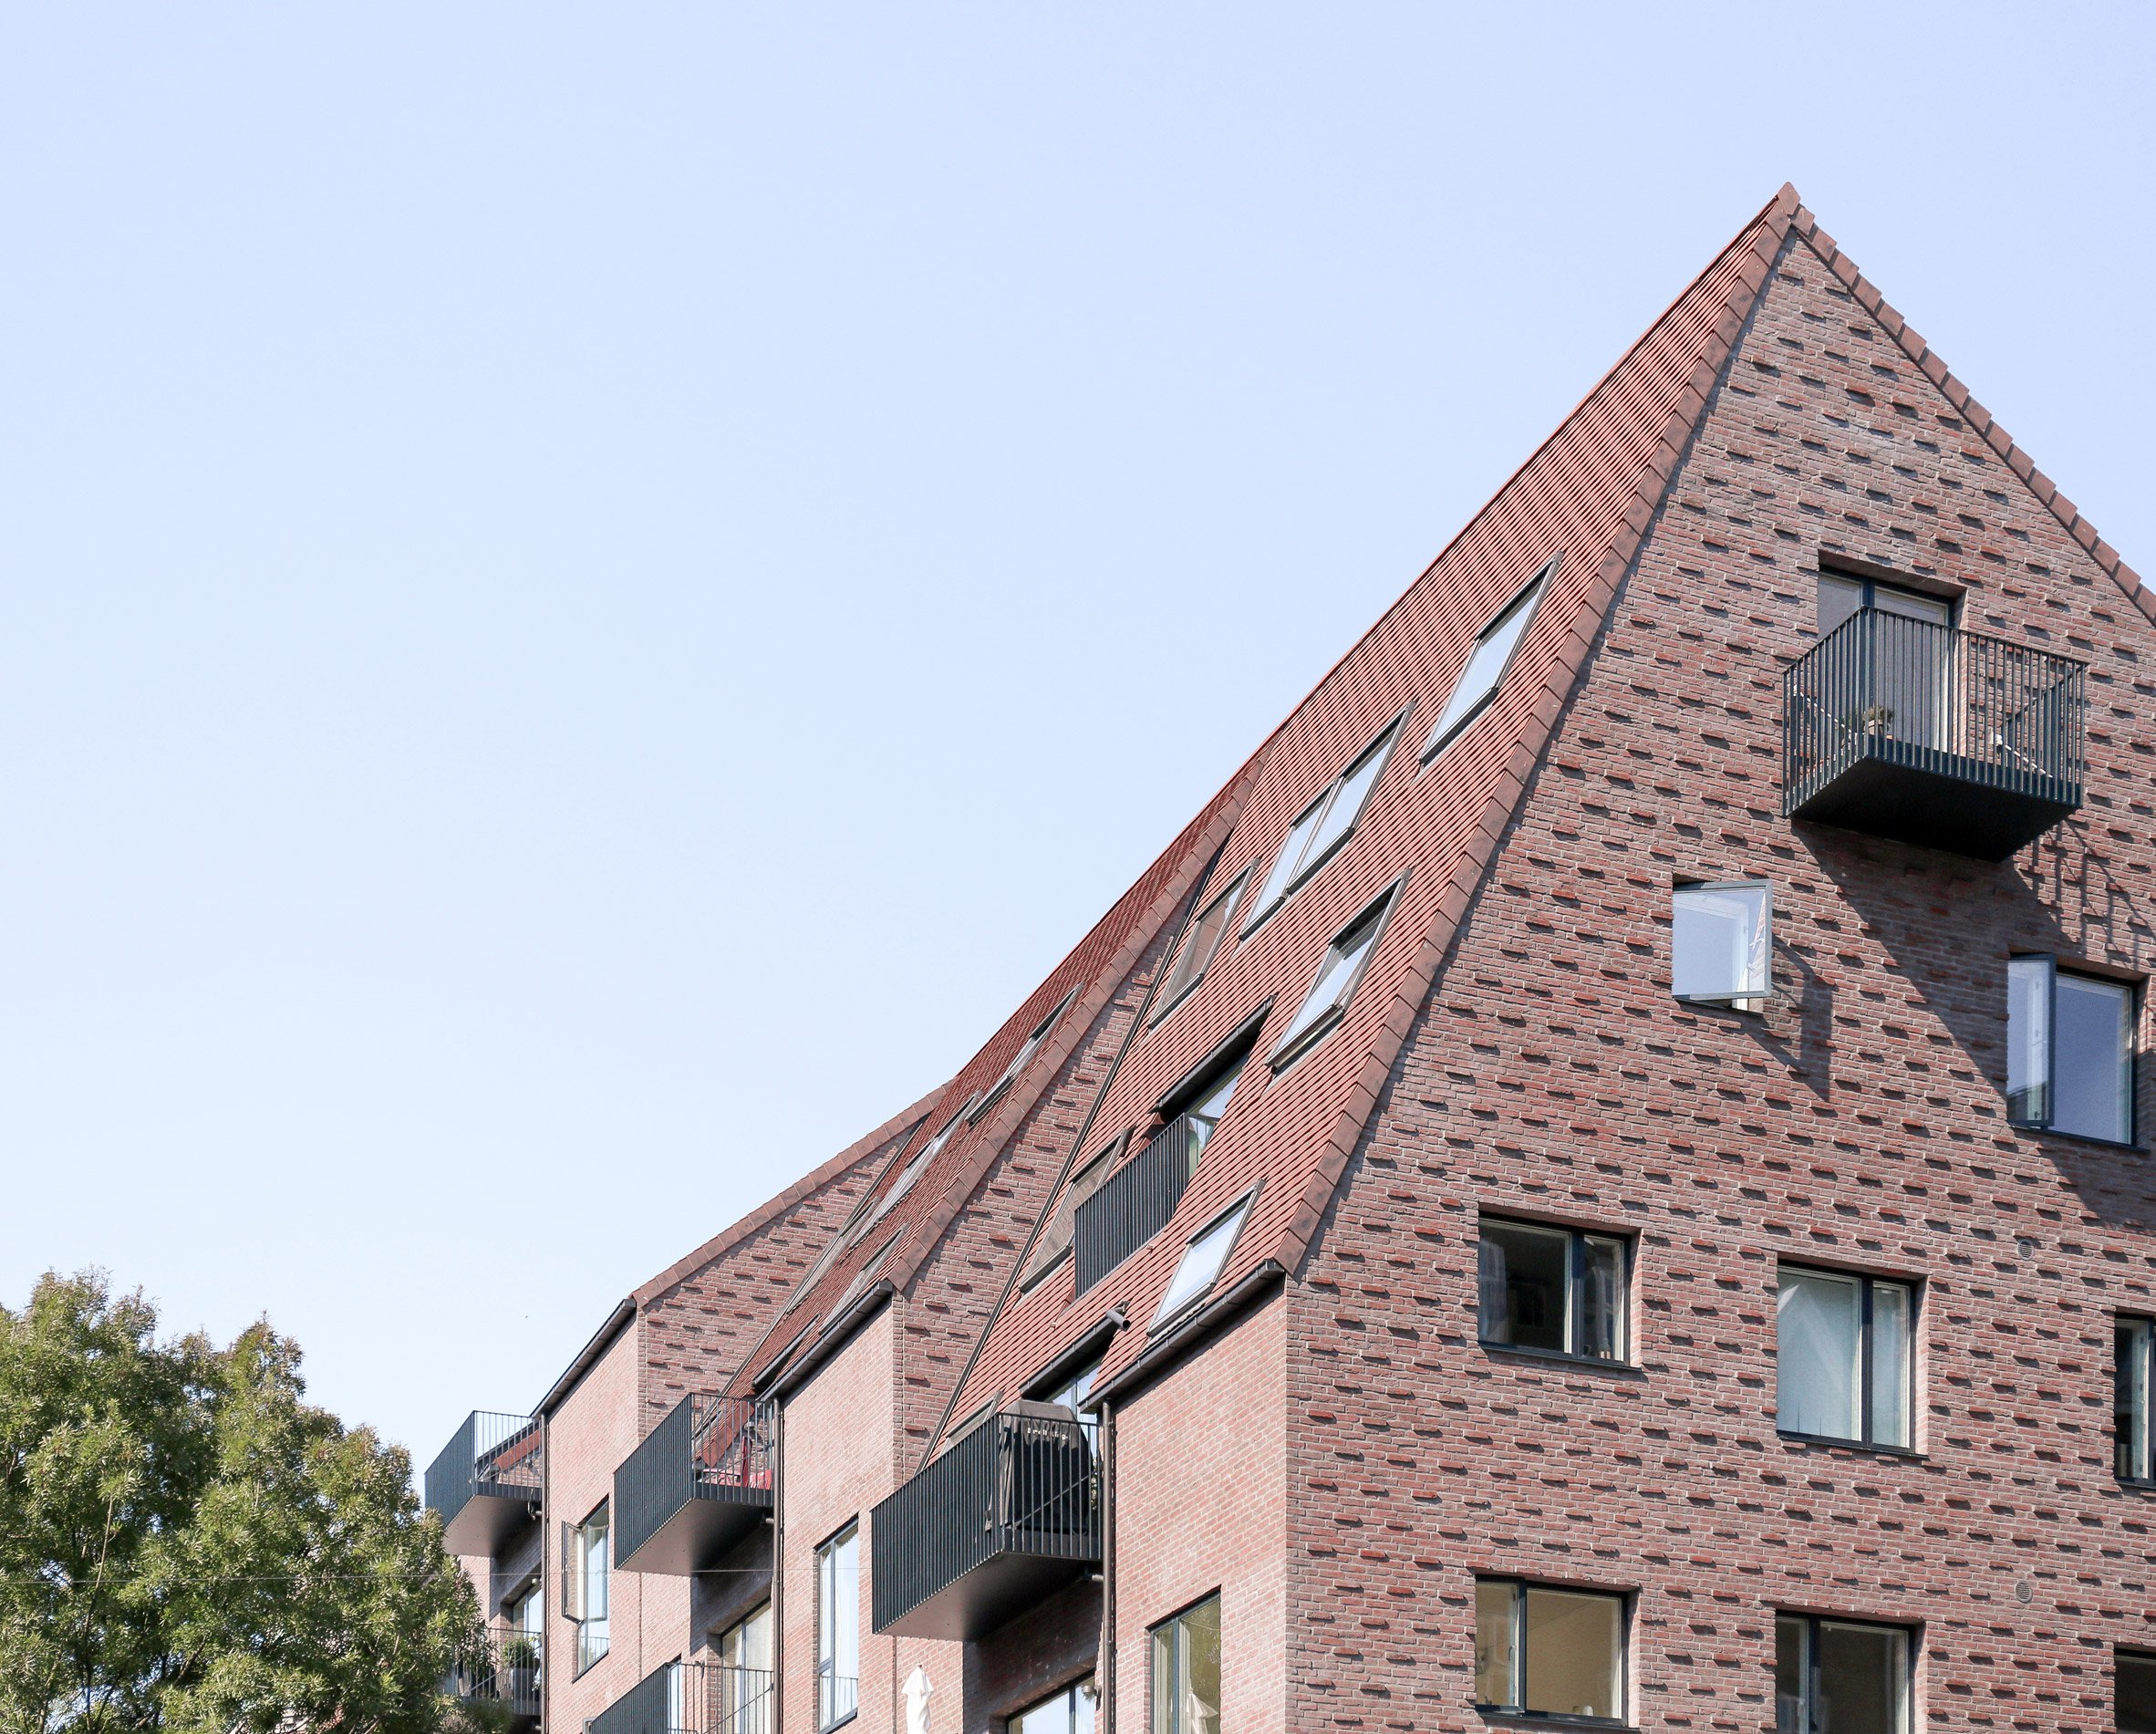 EFFEKT's Thurøhus apartments feature textured brick facades and a staggered roof